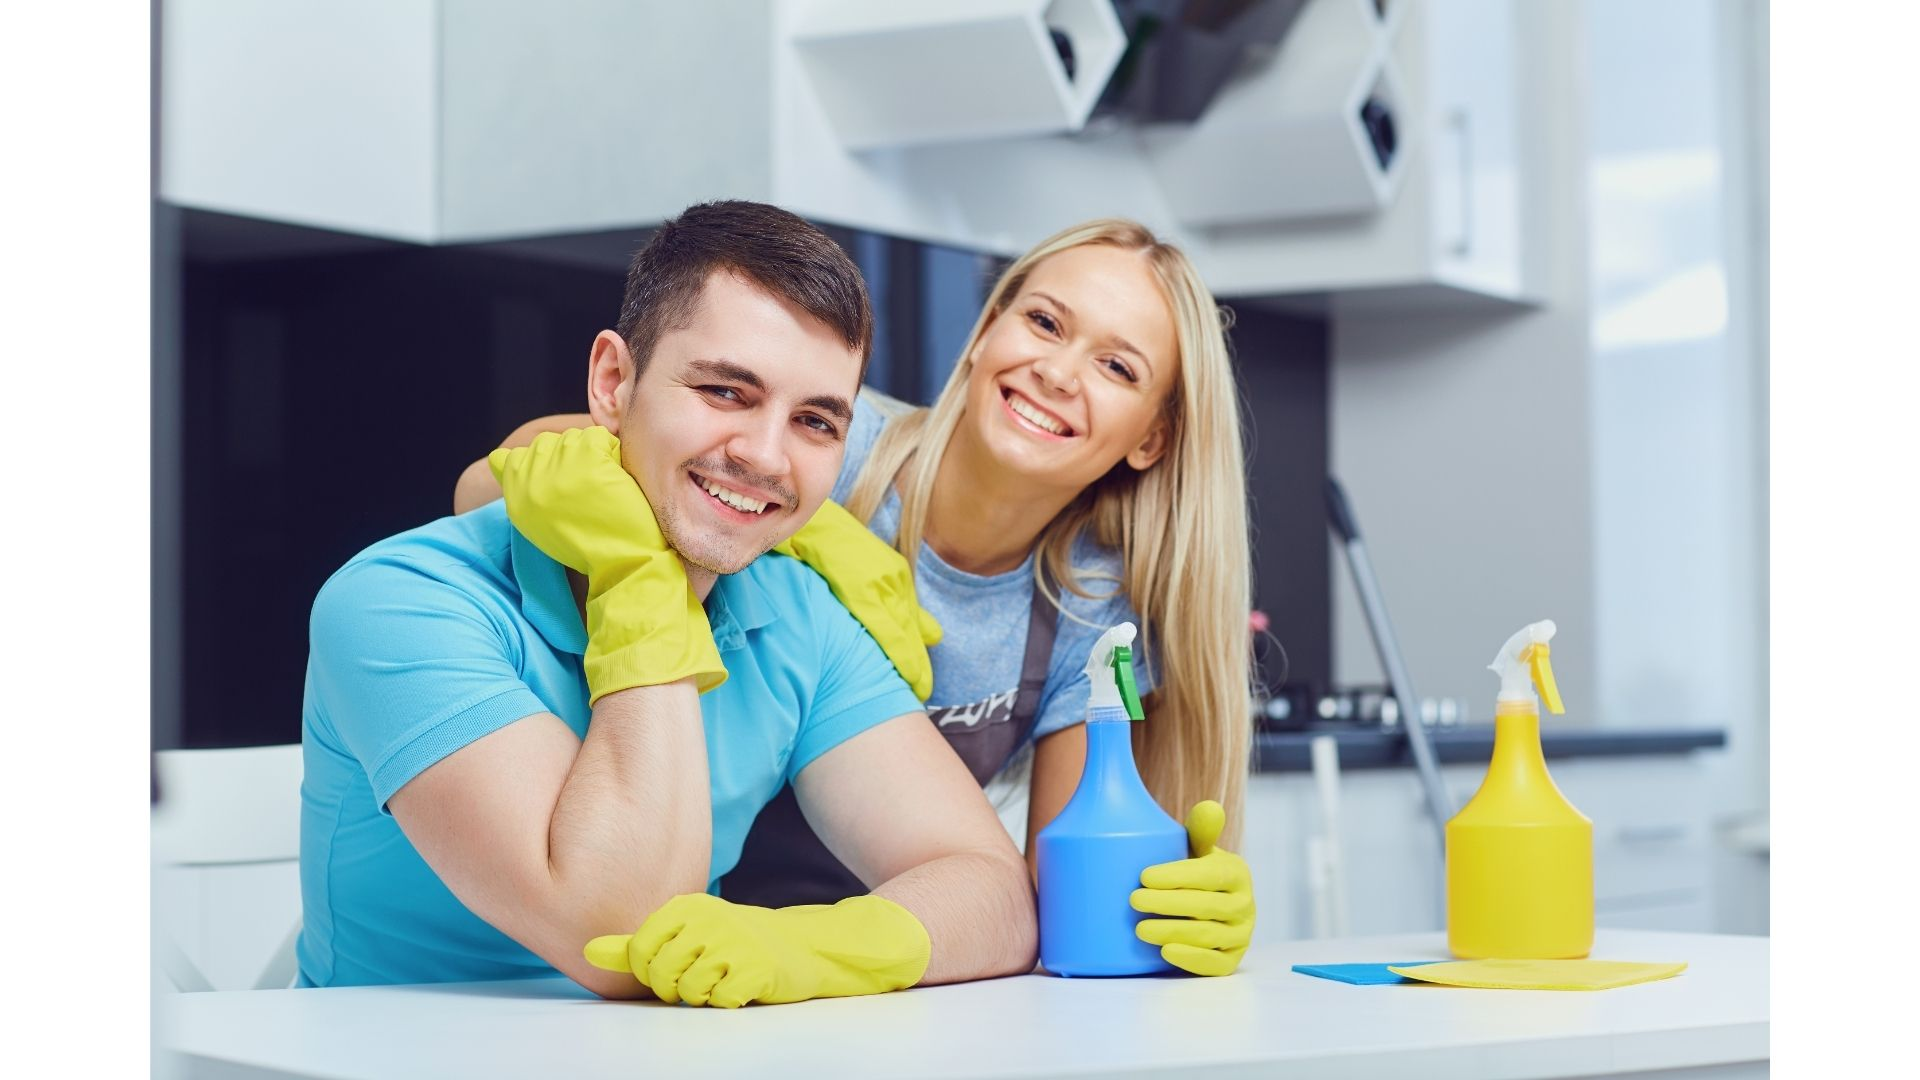 Everyday Cleaning Habits To Adopt For An Always-Clean Home